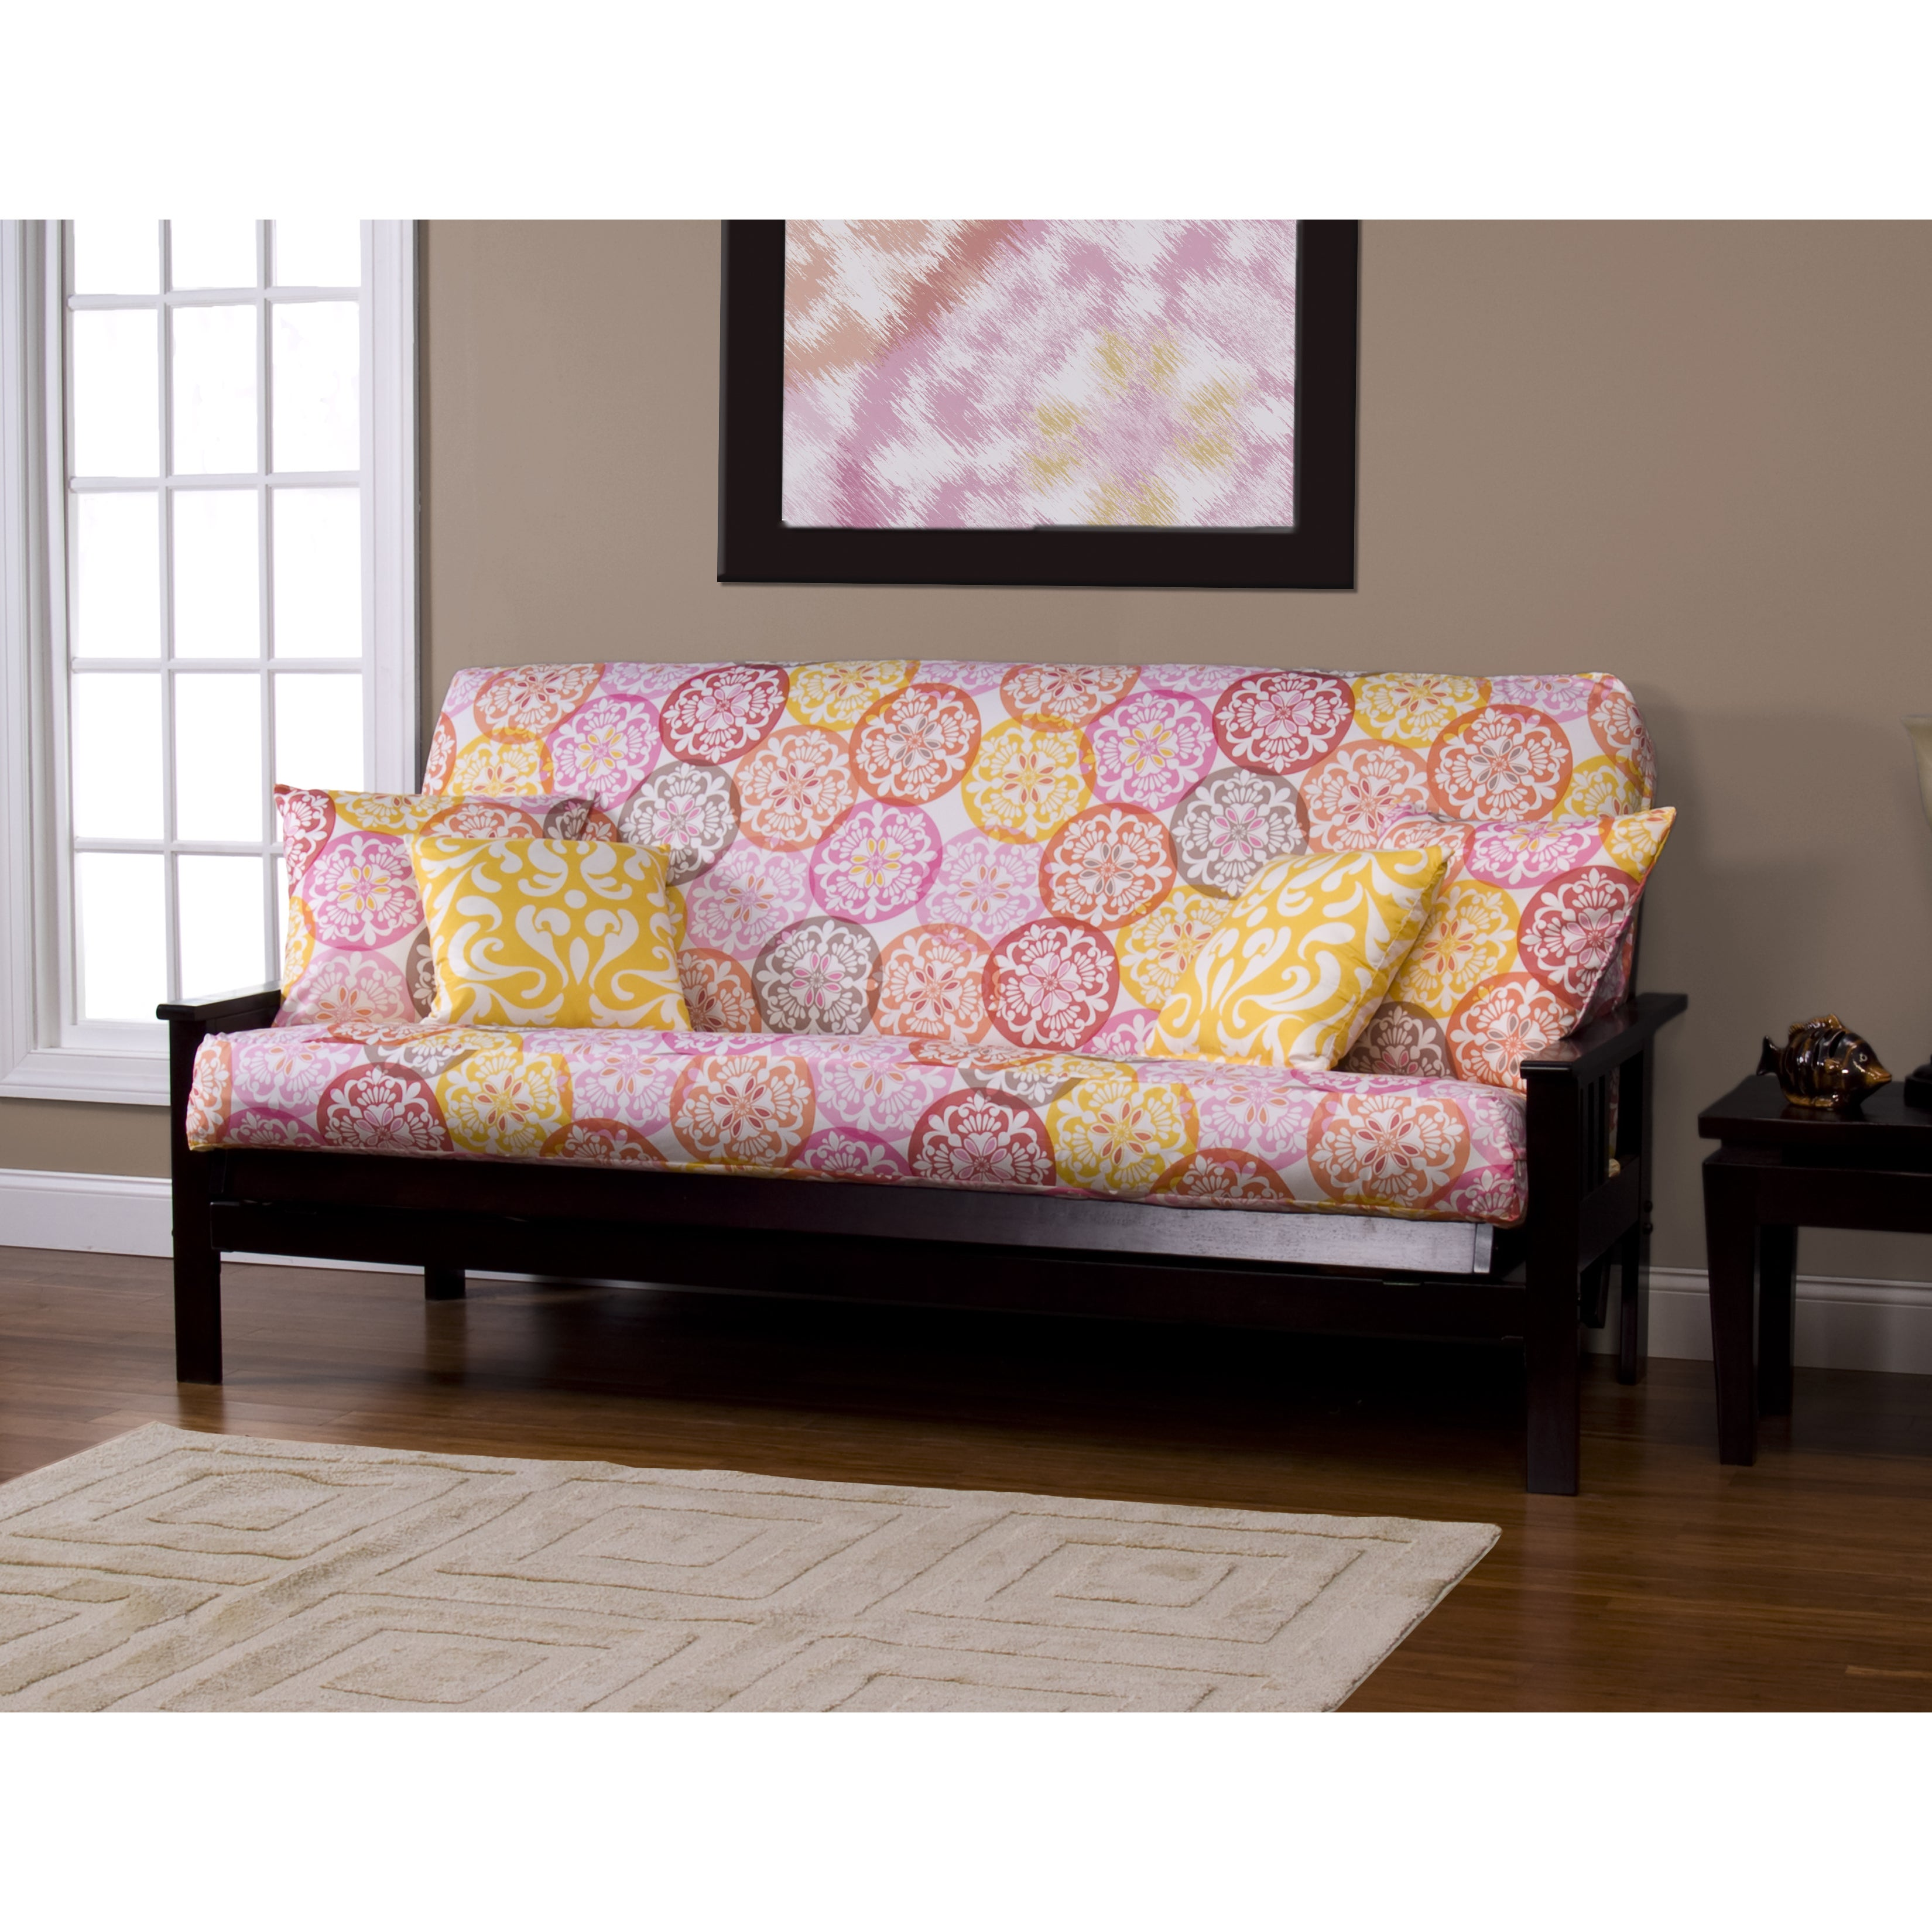 view futon tips with fresh ikea design awesome at home ideas slipcover cool interior luxury slipcovers